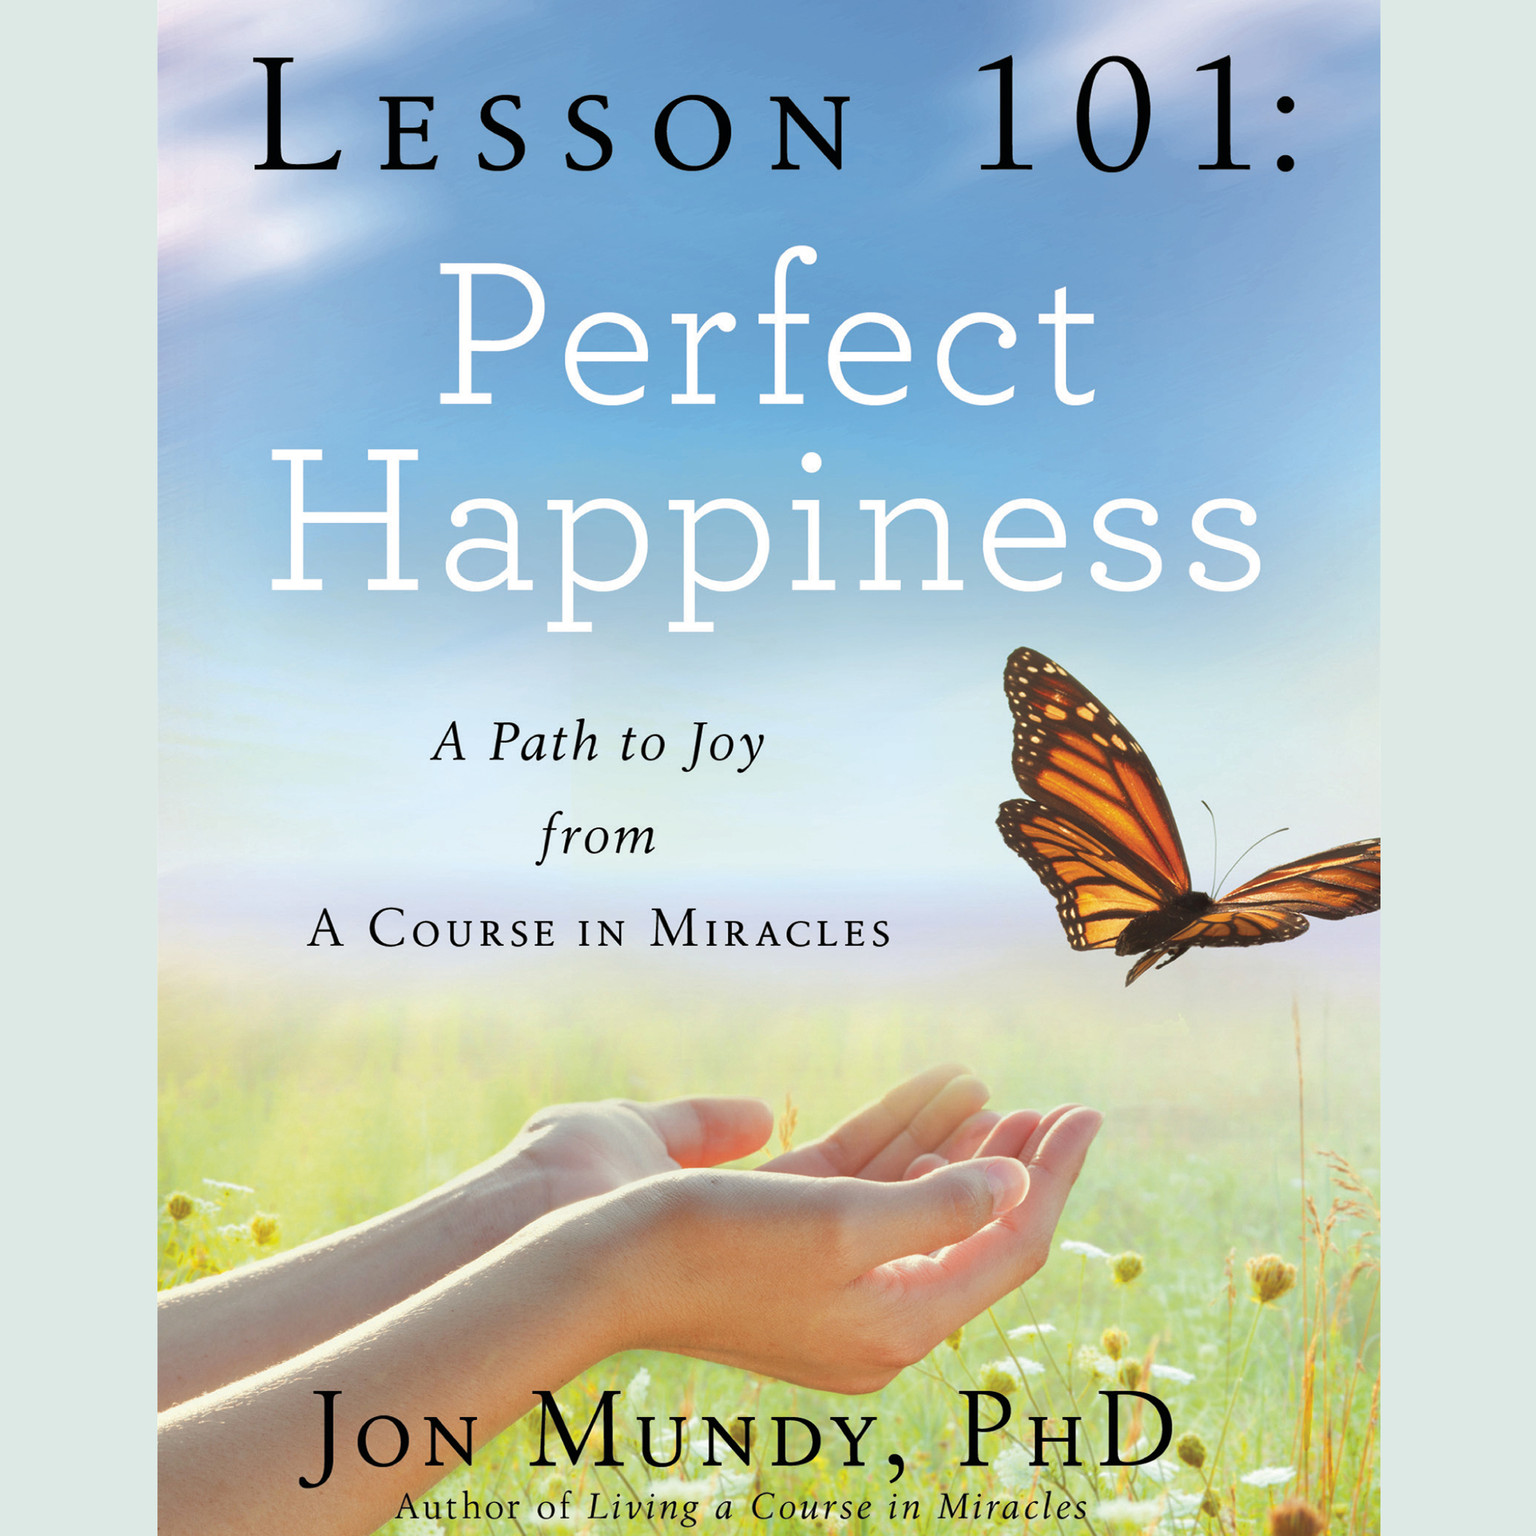 Printable Lesson 101: Perfect Happiness: A Path to Joy from A Course in Miracles Audiobook Cover Art